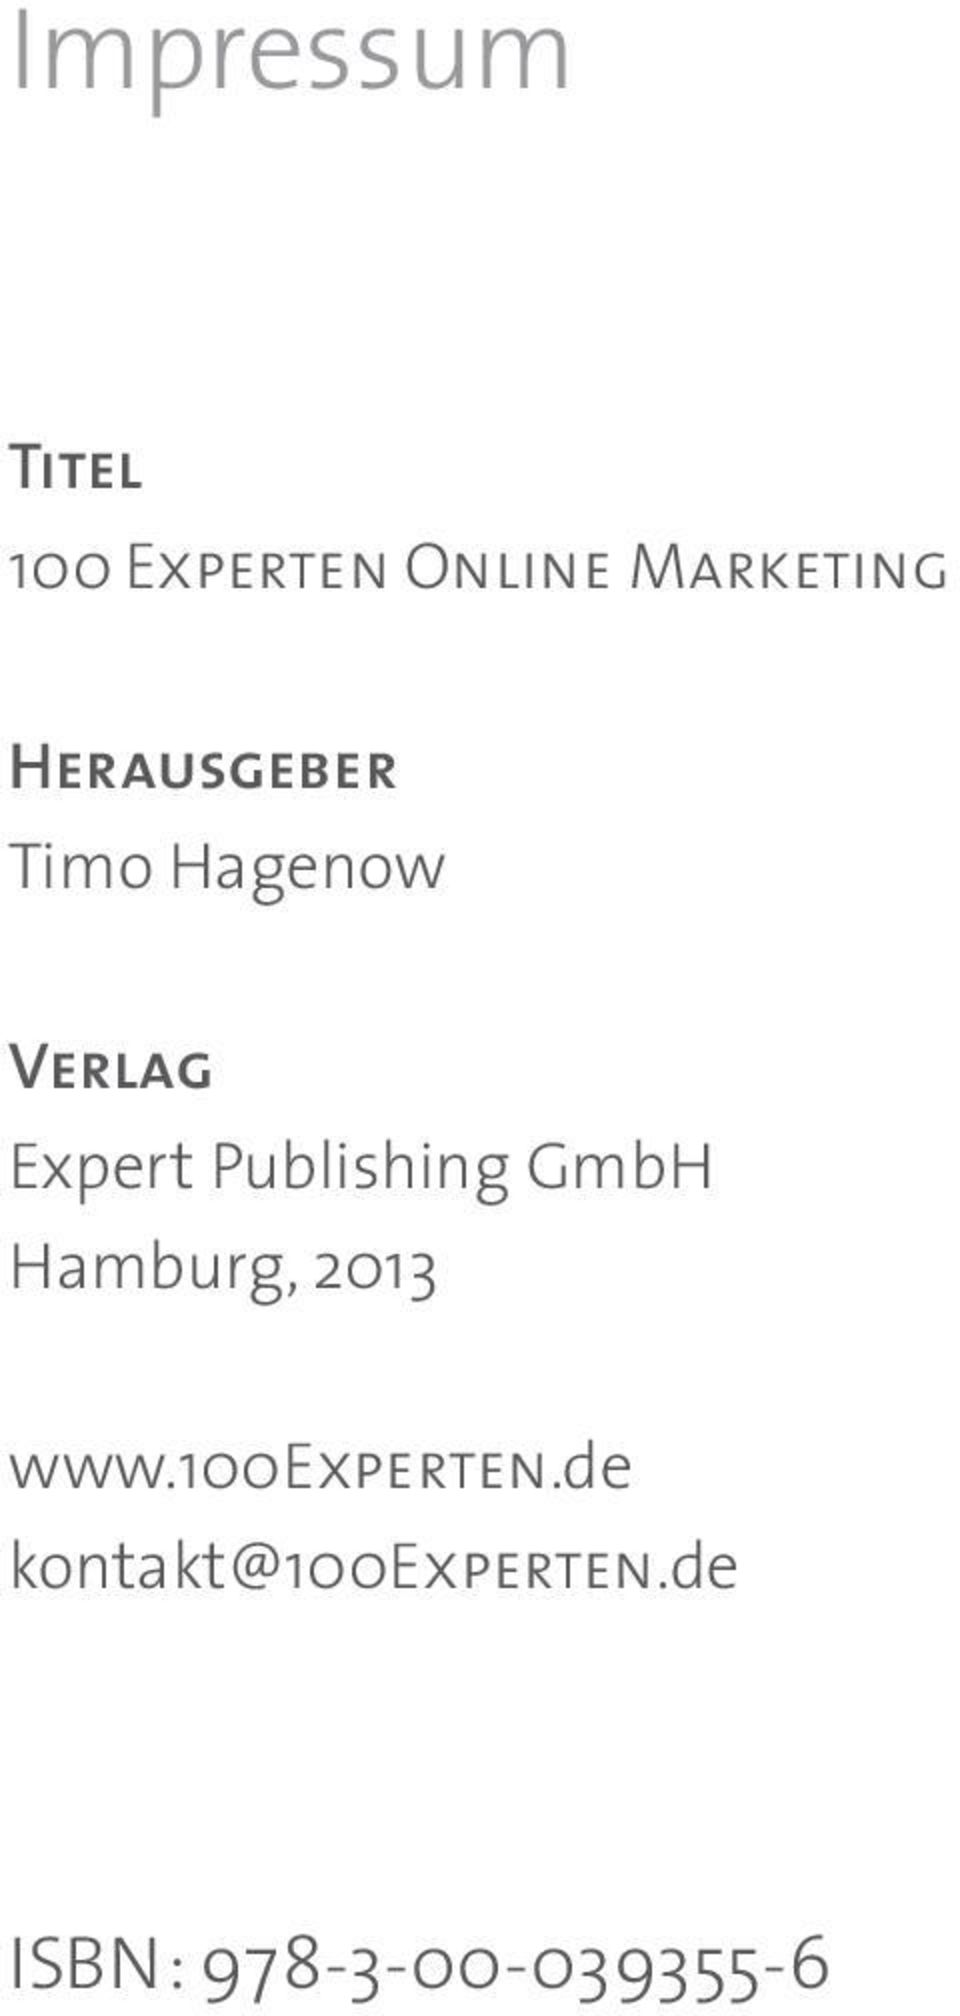 Expert Publishing GmbH Hamburg, 2013 www.